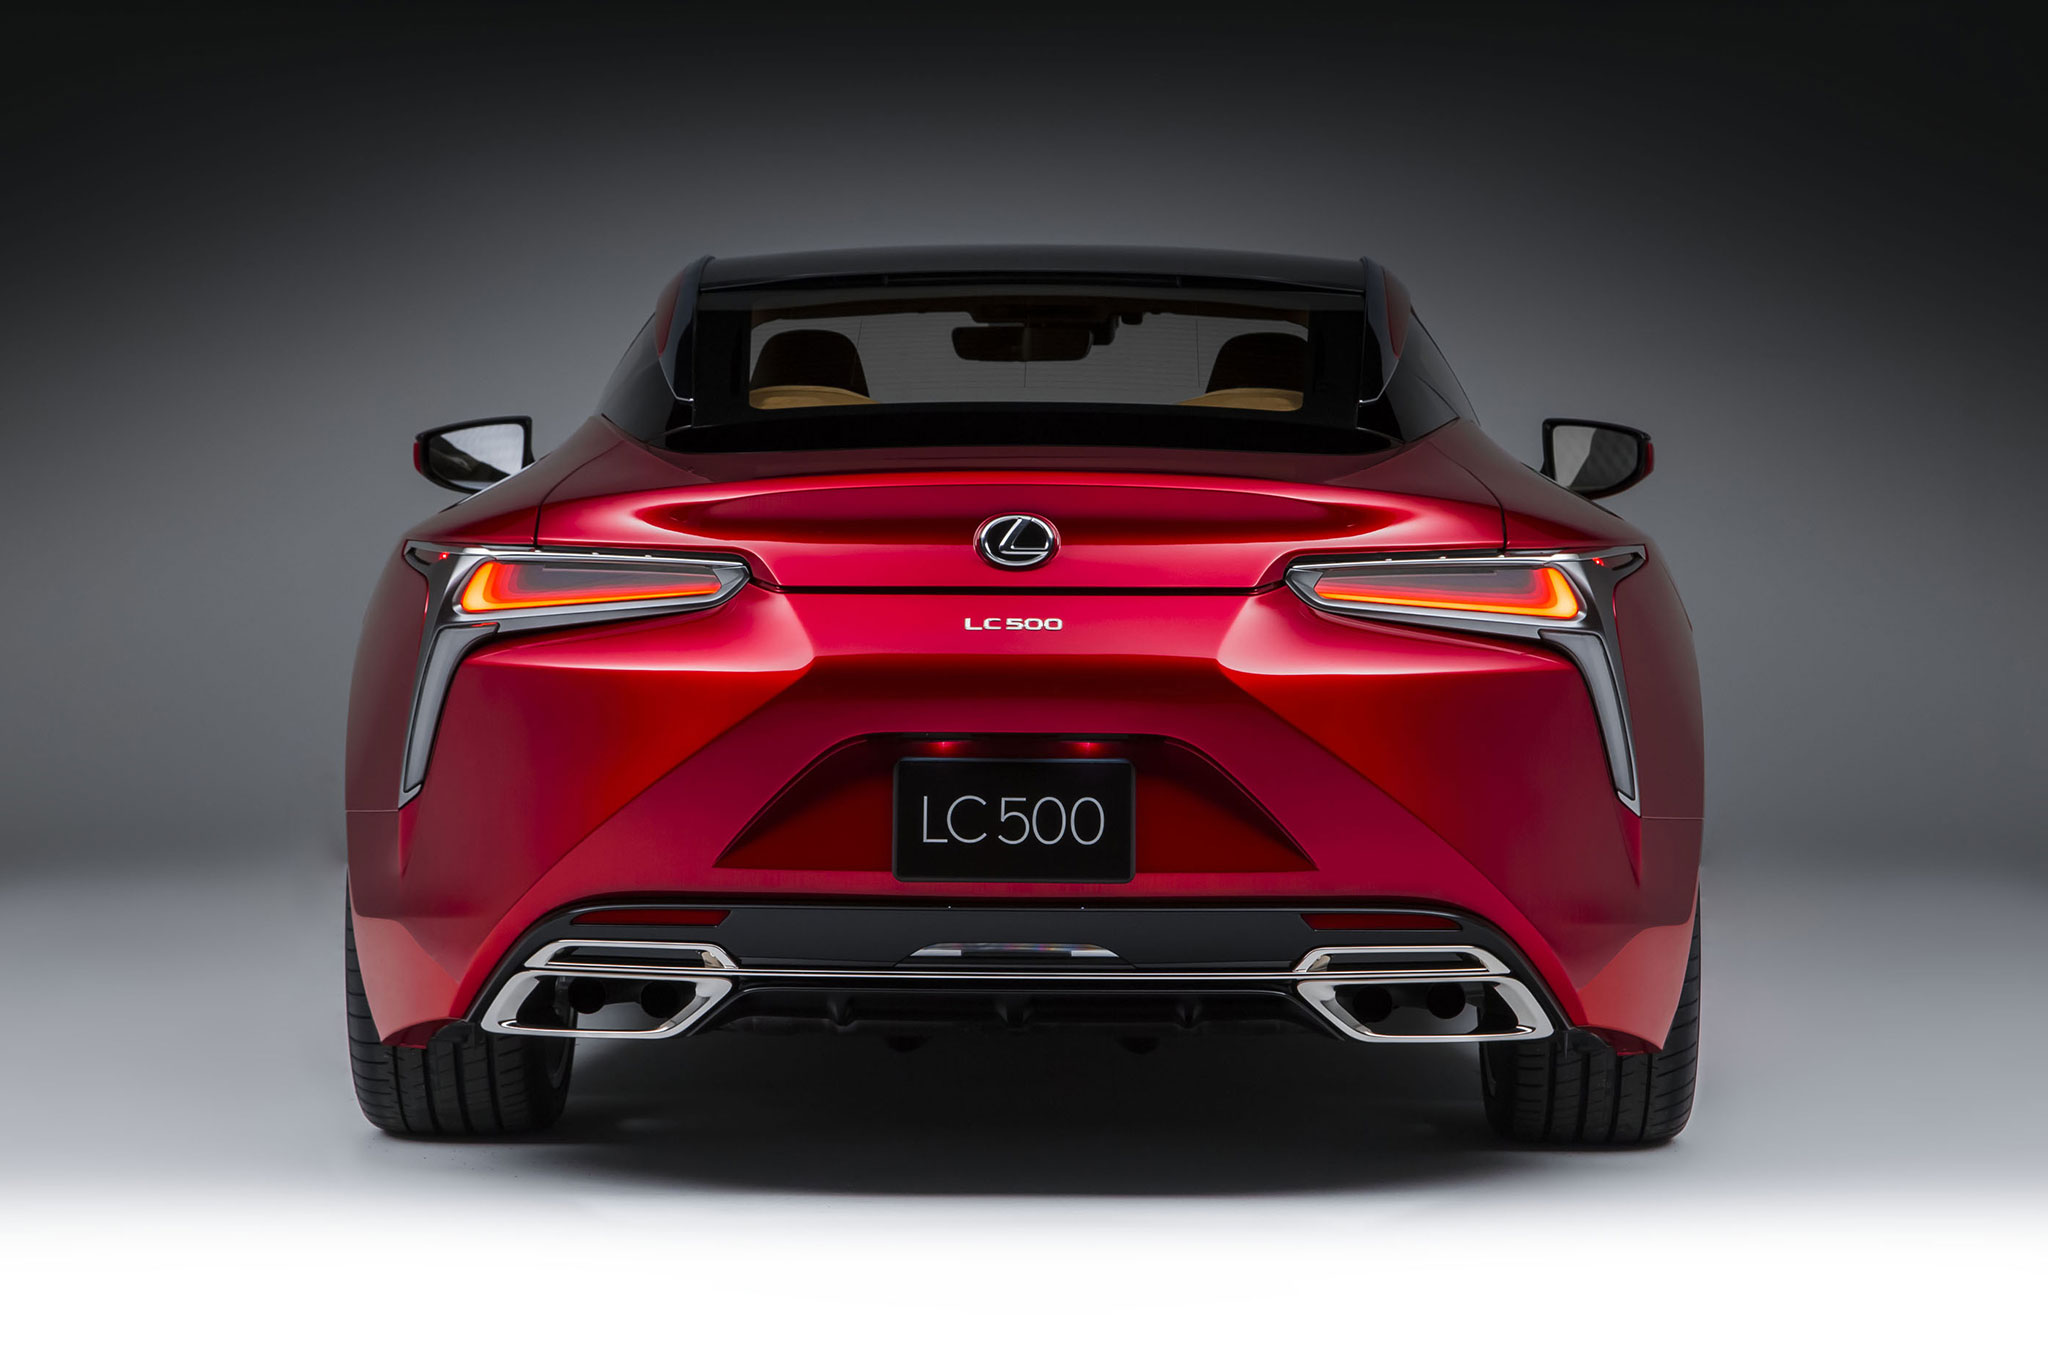 2018 Lexus LC 500 rear end